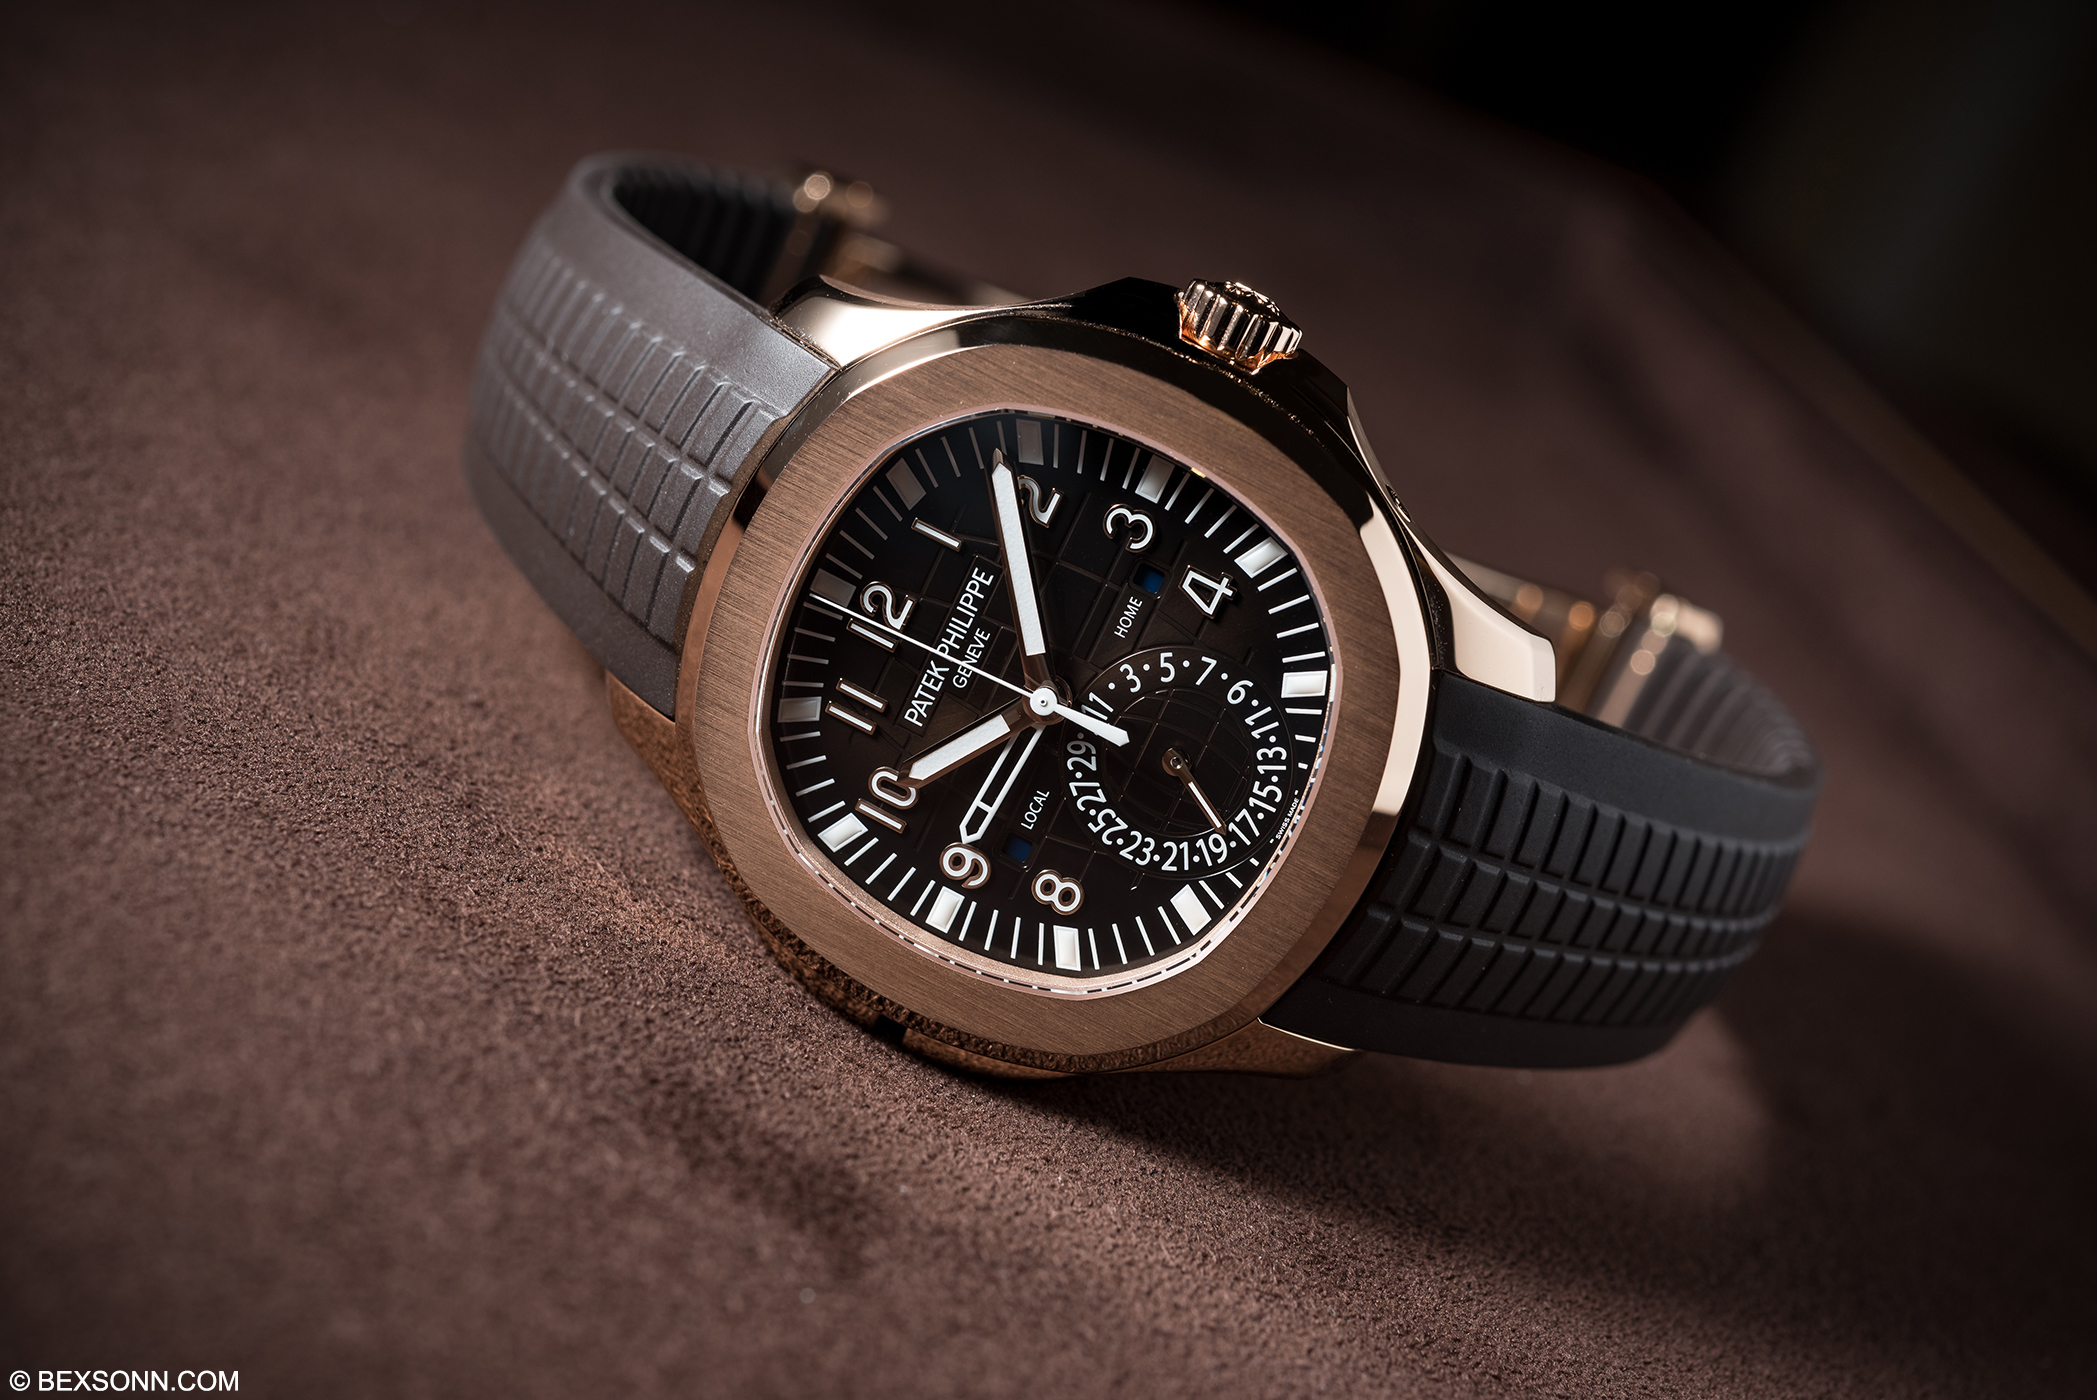 The New Patek Philippe Aquanaut Travel Time 5164r Bexsonn